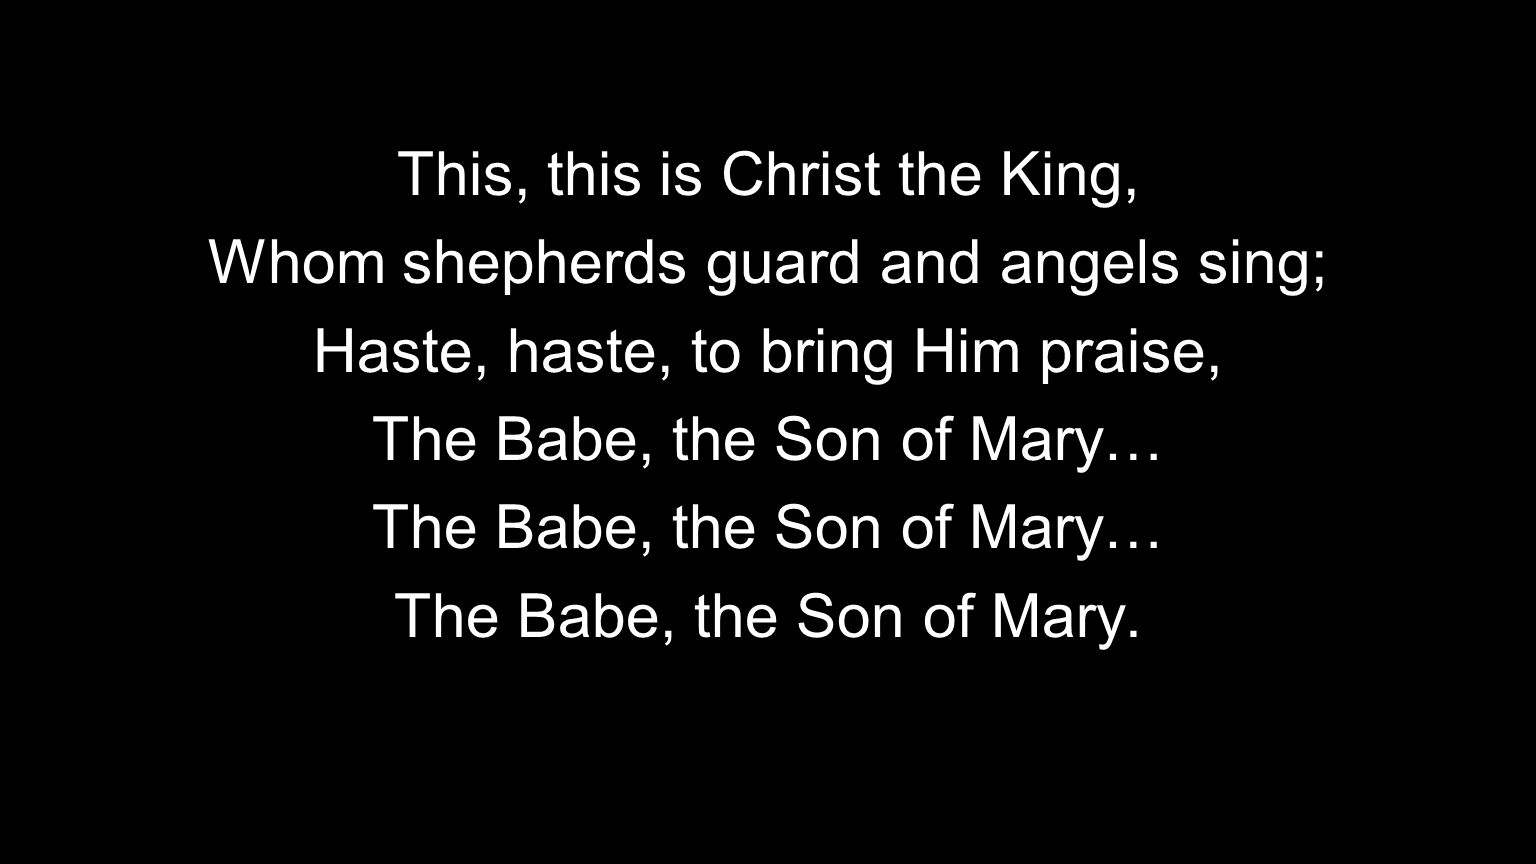 This, this is Christ the King, Whom shepherds guard and angels sing;